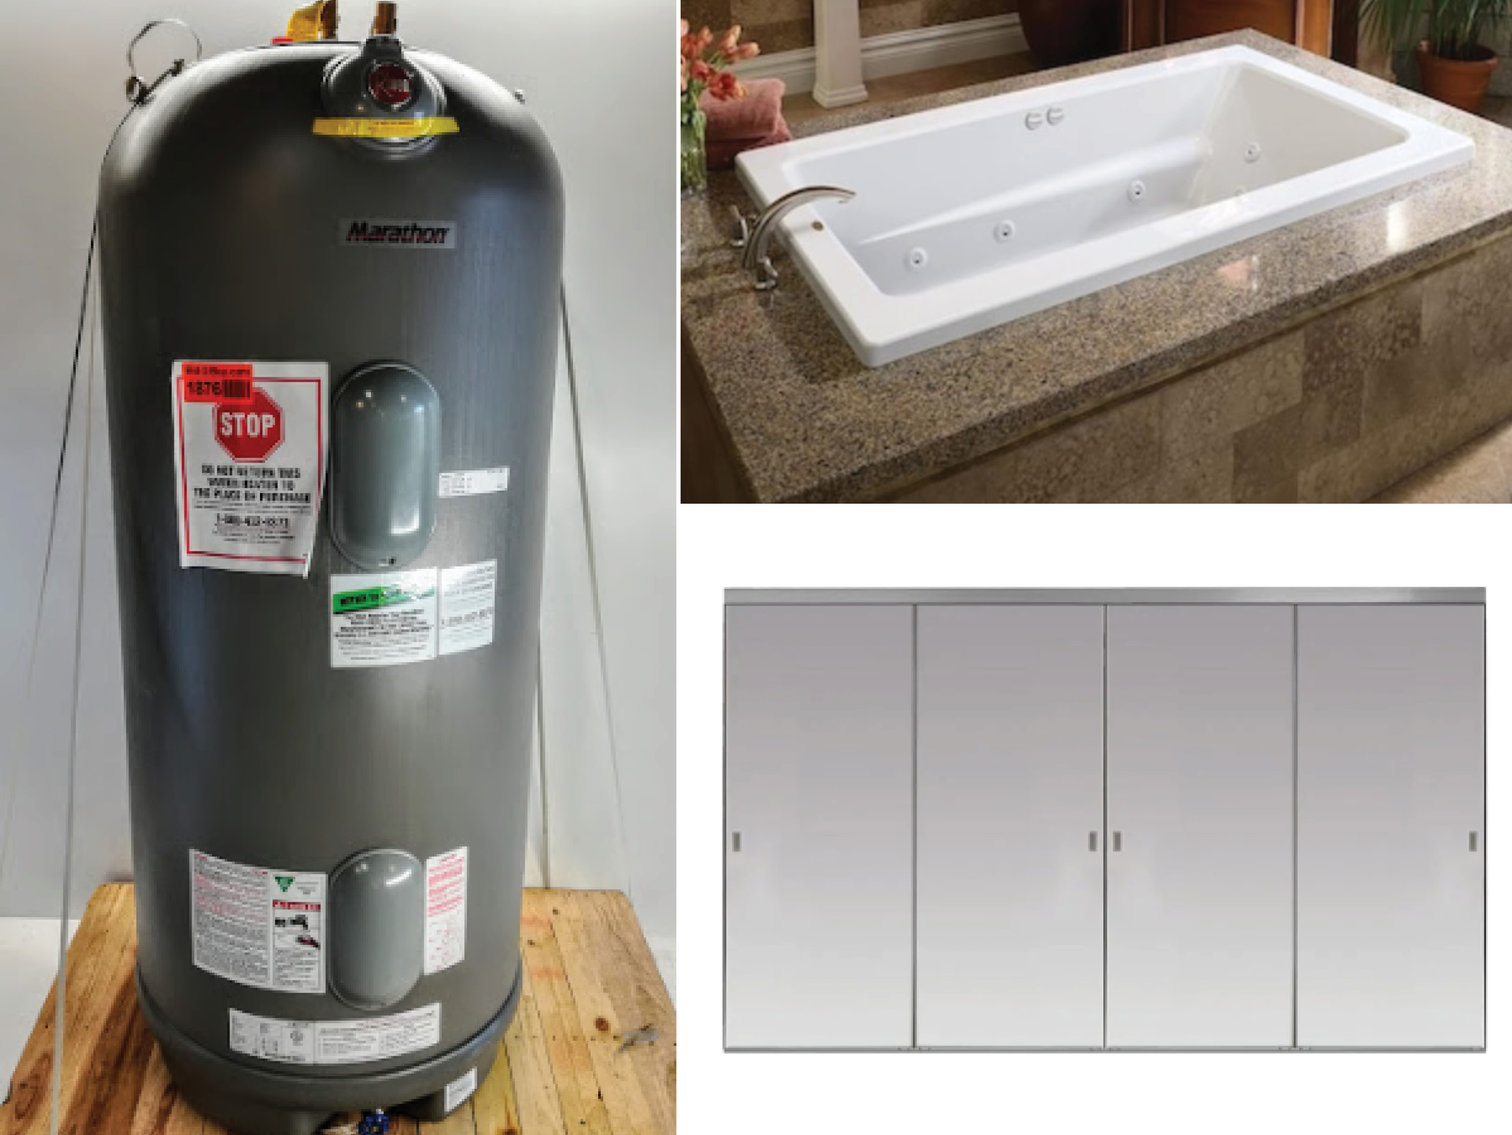 Liquidation Merchandise Auction: Home Improvement, Tools, Outdoor Equipment and More